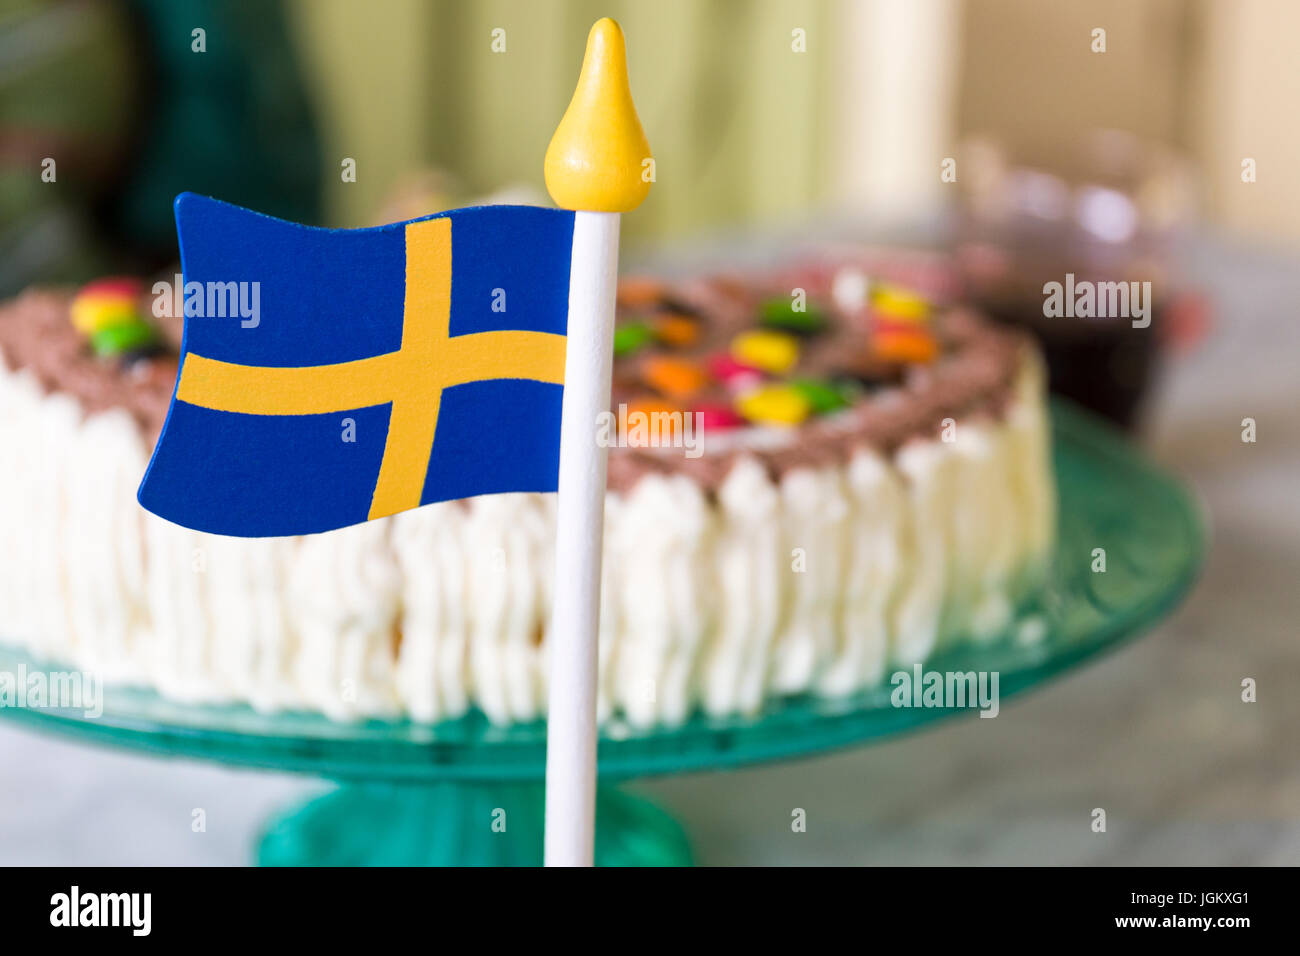 Small wooden swedish flag on table in front of beautifully decorated cake during celebration  Model Release: No. - Stock Image